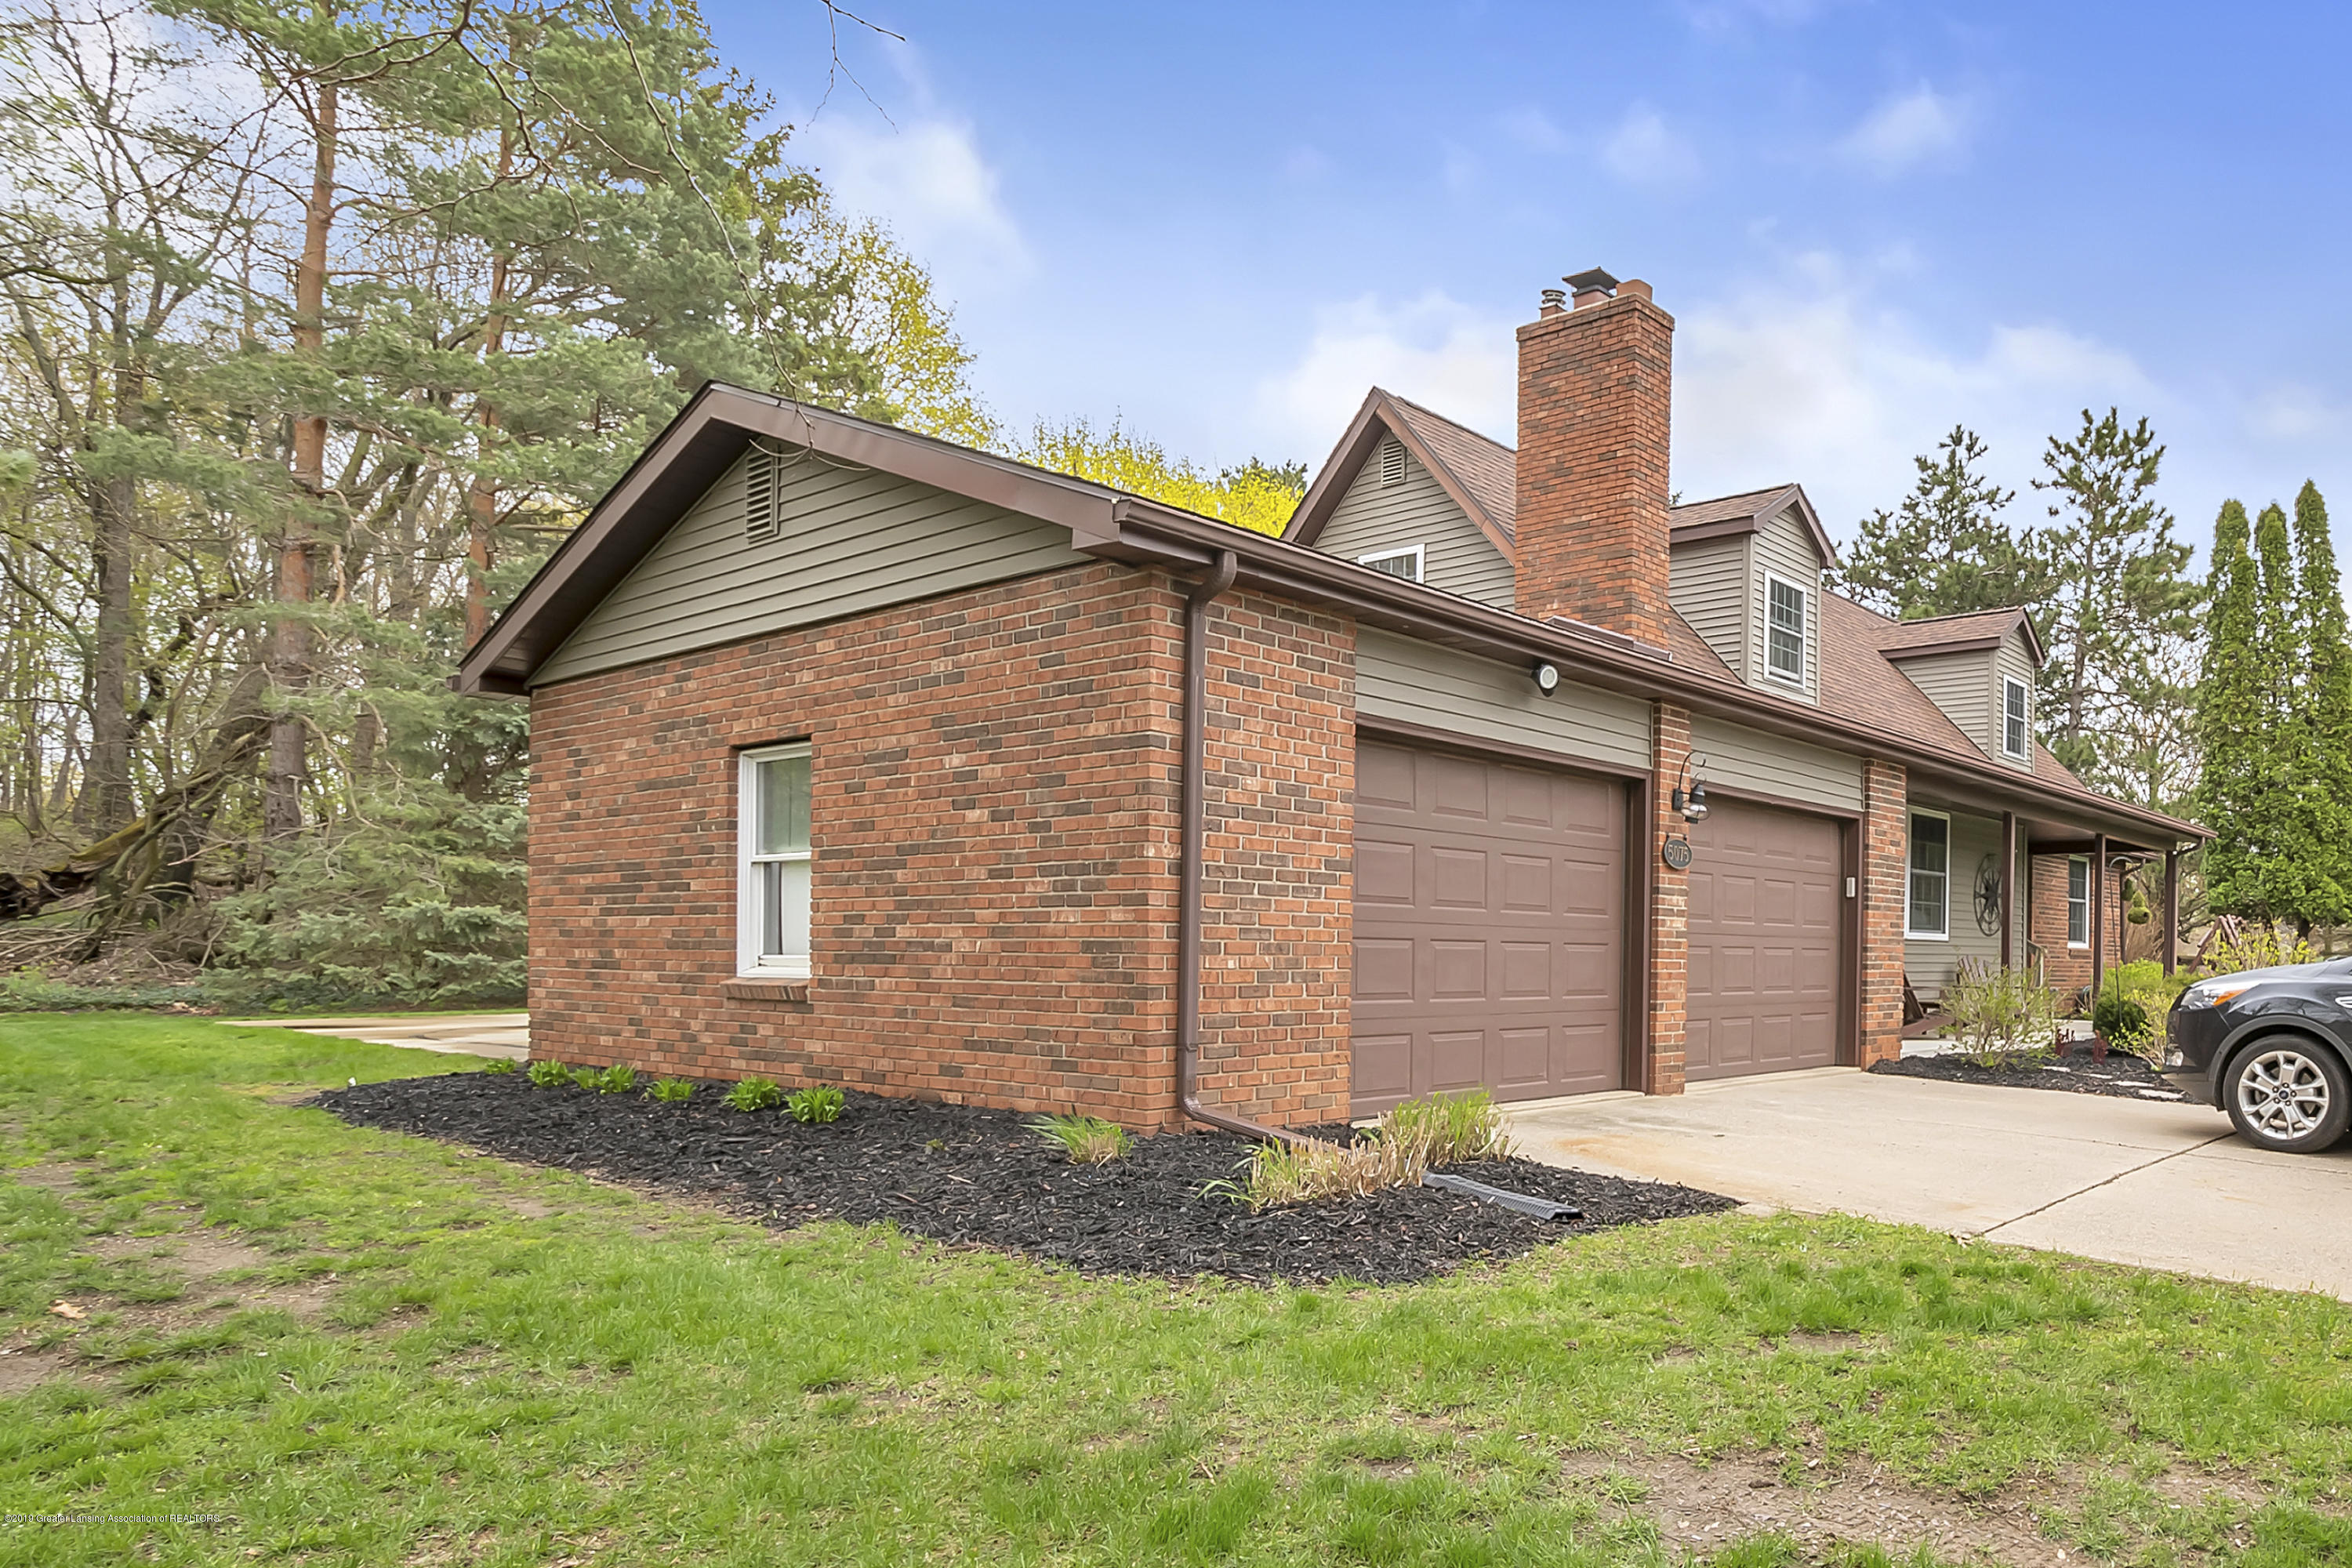 5075 Lake Dr - 5075-Lake-Dr-Owosso-windowstill-2 - 2